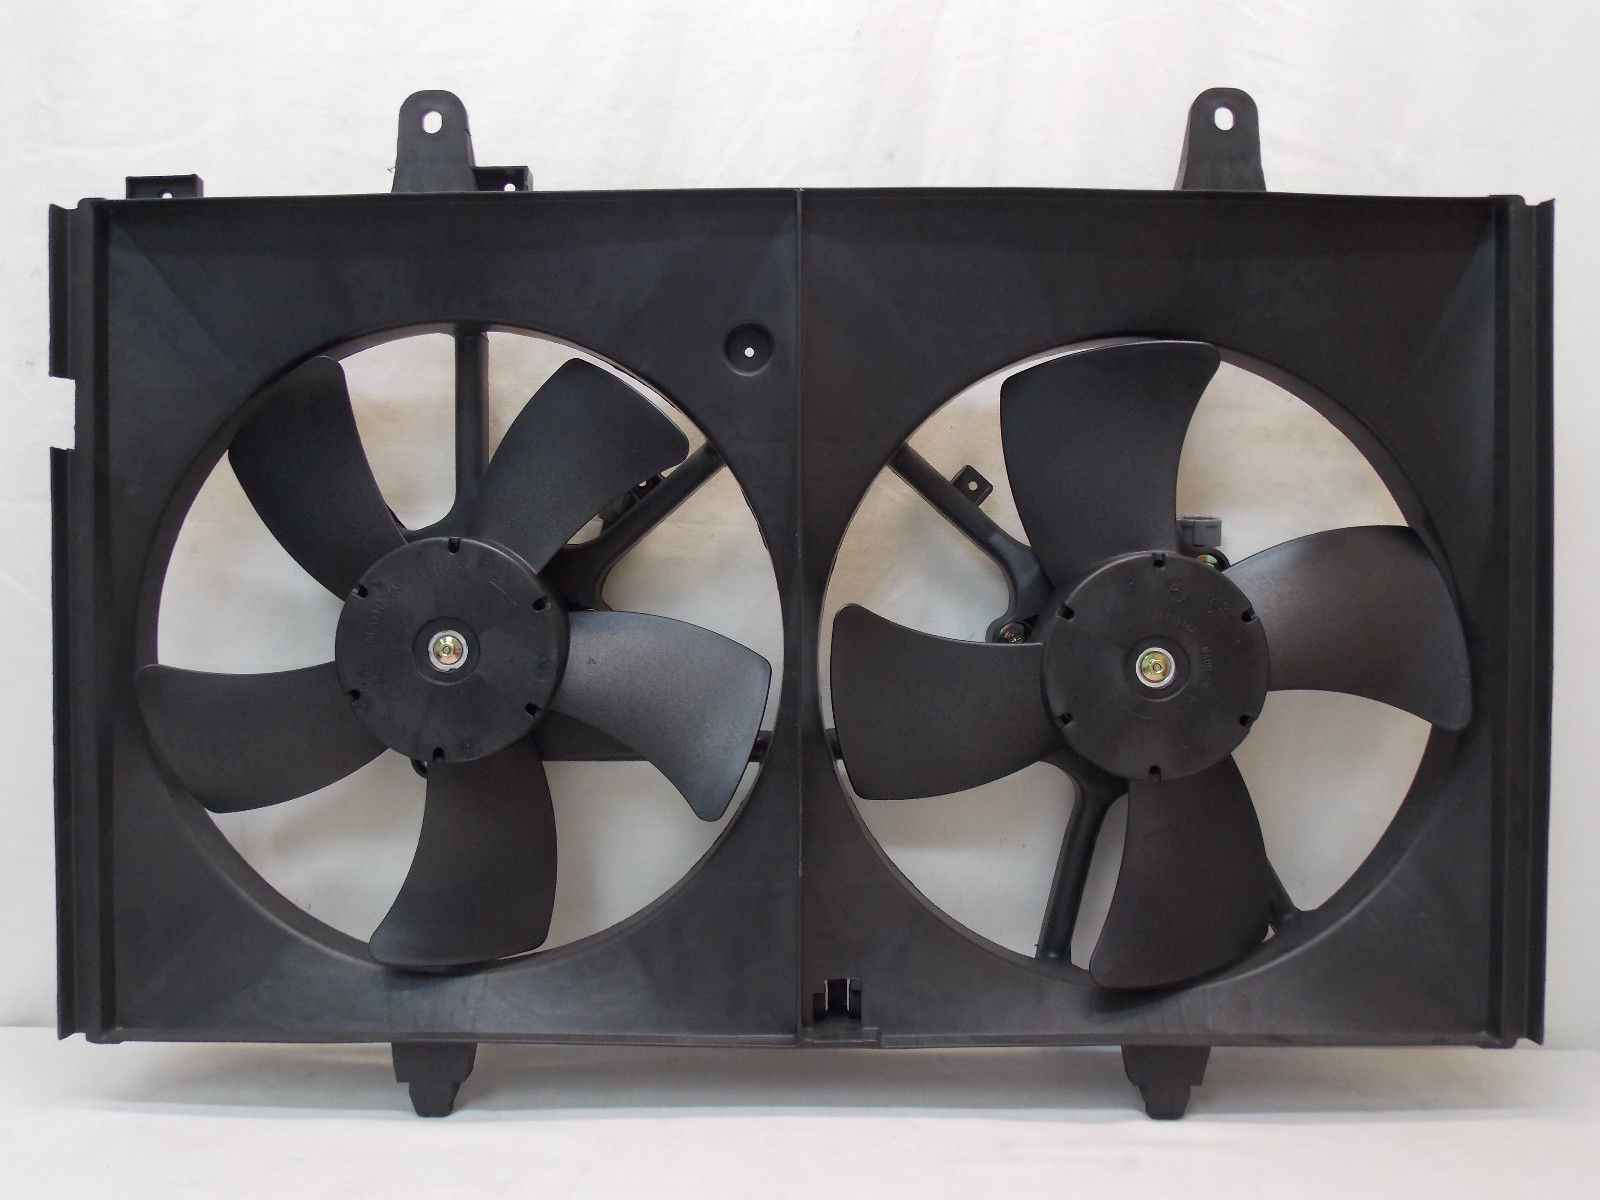 For 2003-2007 Nissan Murano Dual Radiator and Condenser Fan